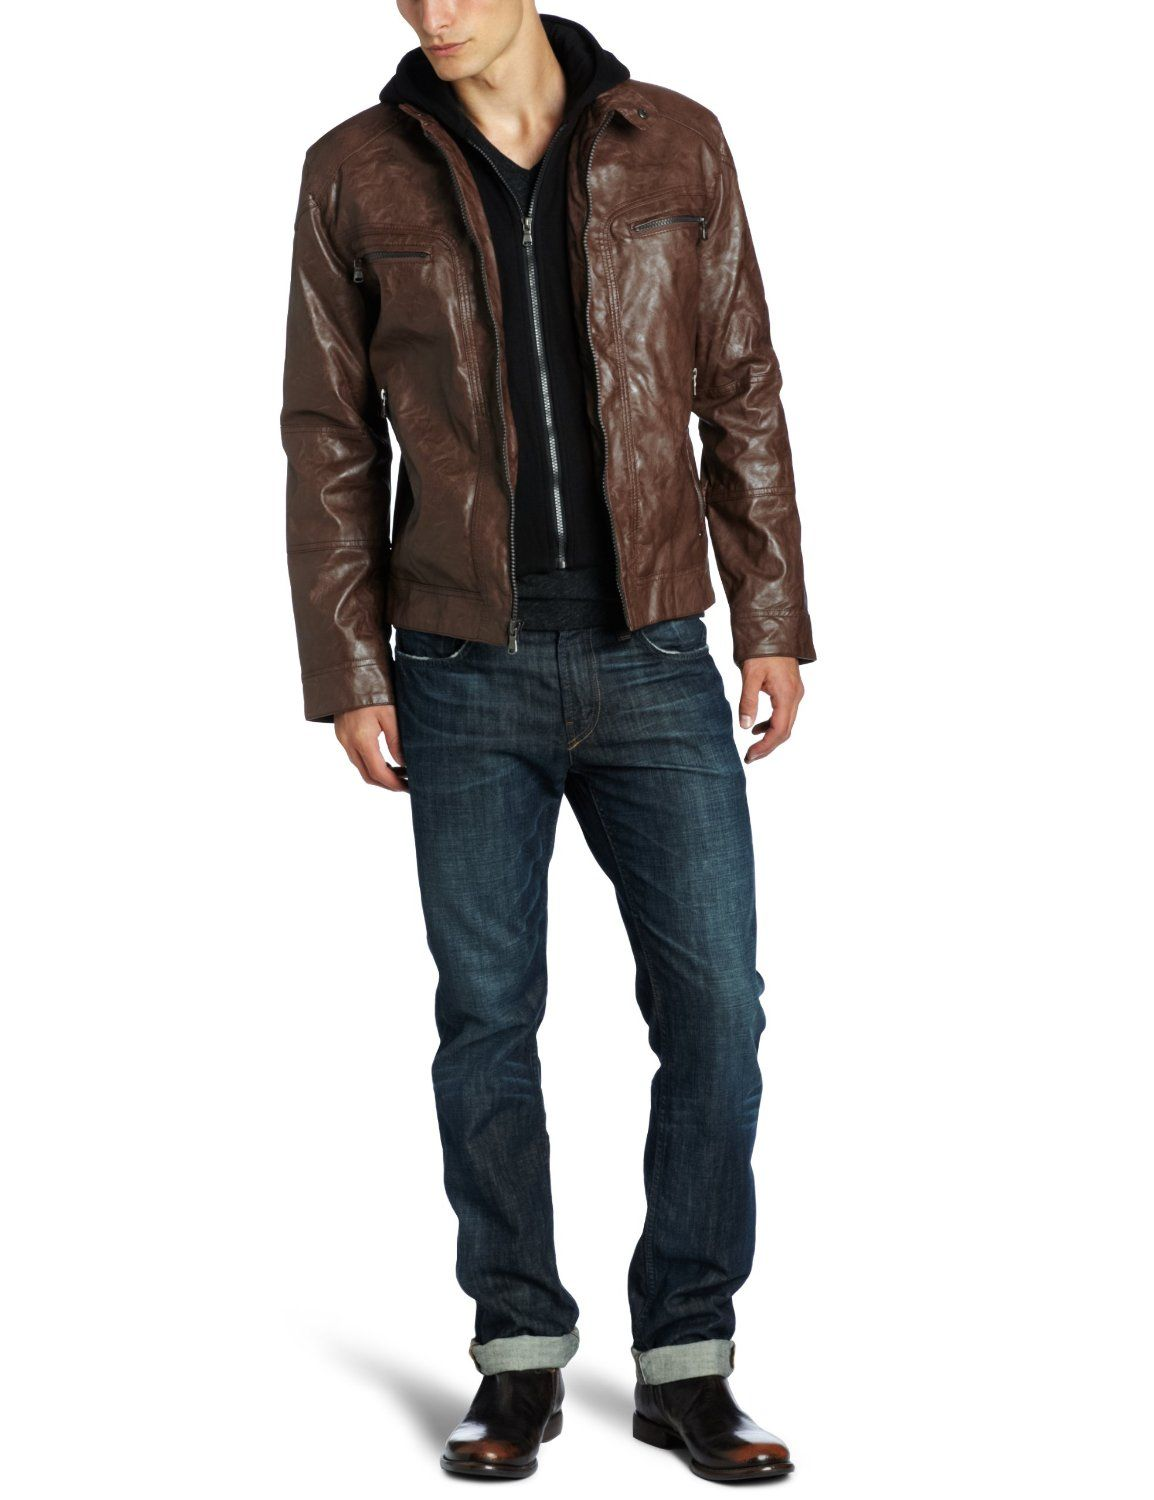 65d2128d291a Calvin Klein Men s Faux Leather Moto Jacket With Hoodie http   amzn.to